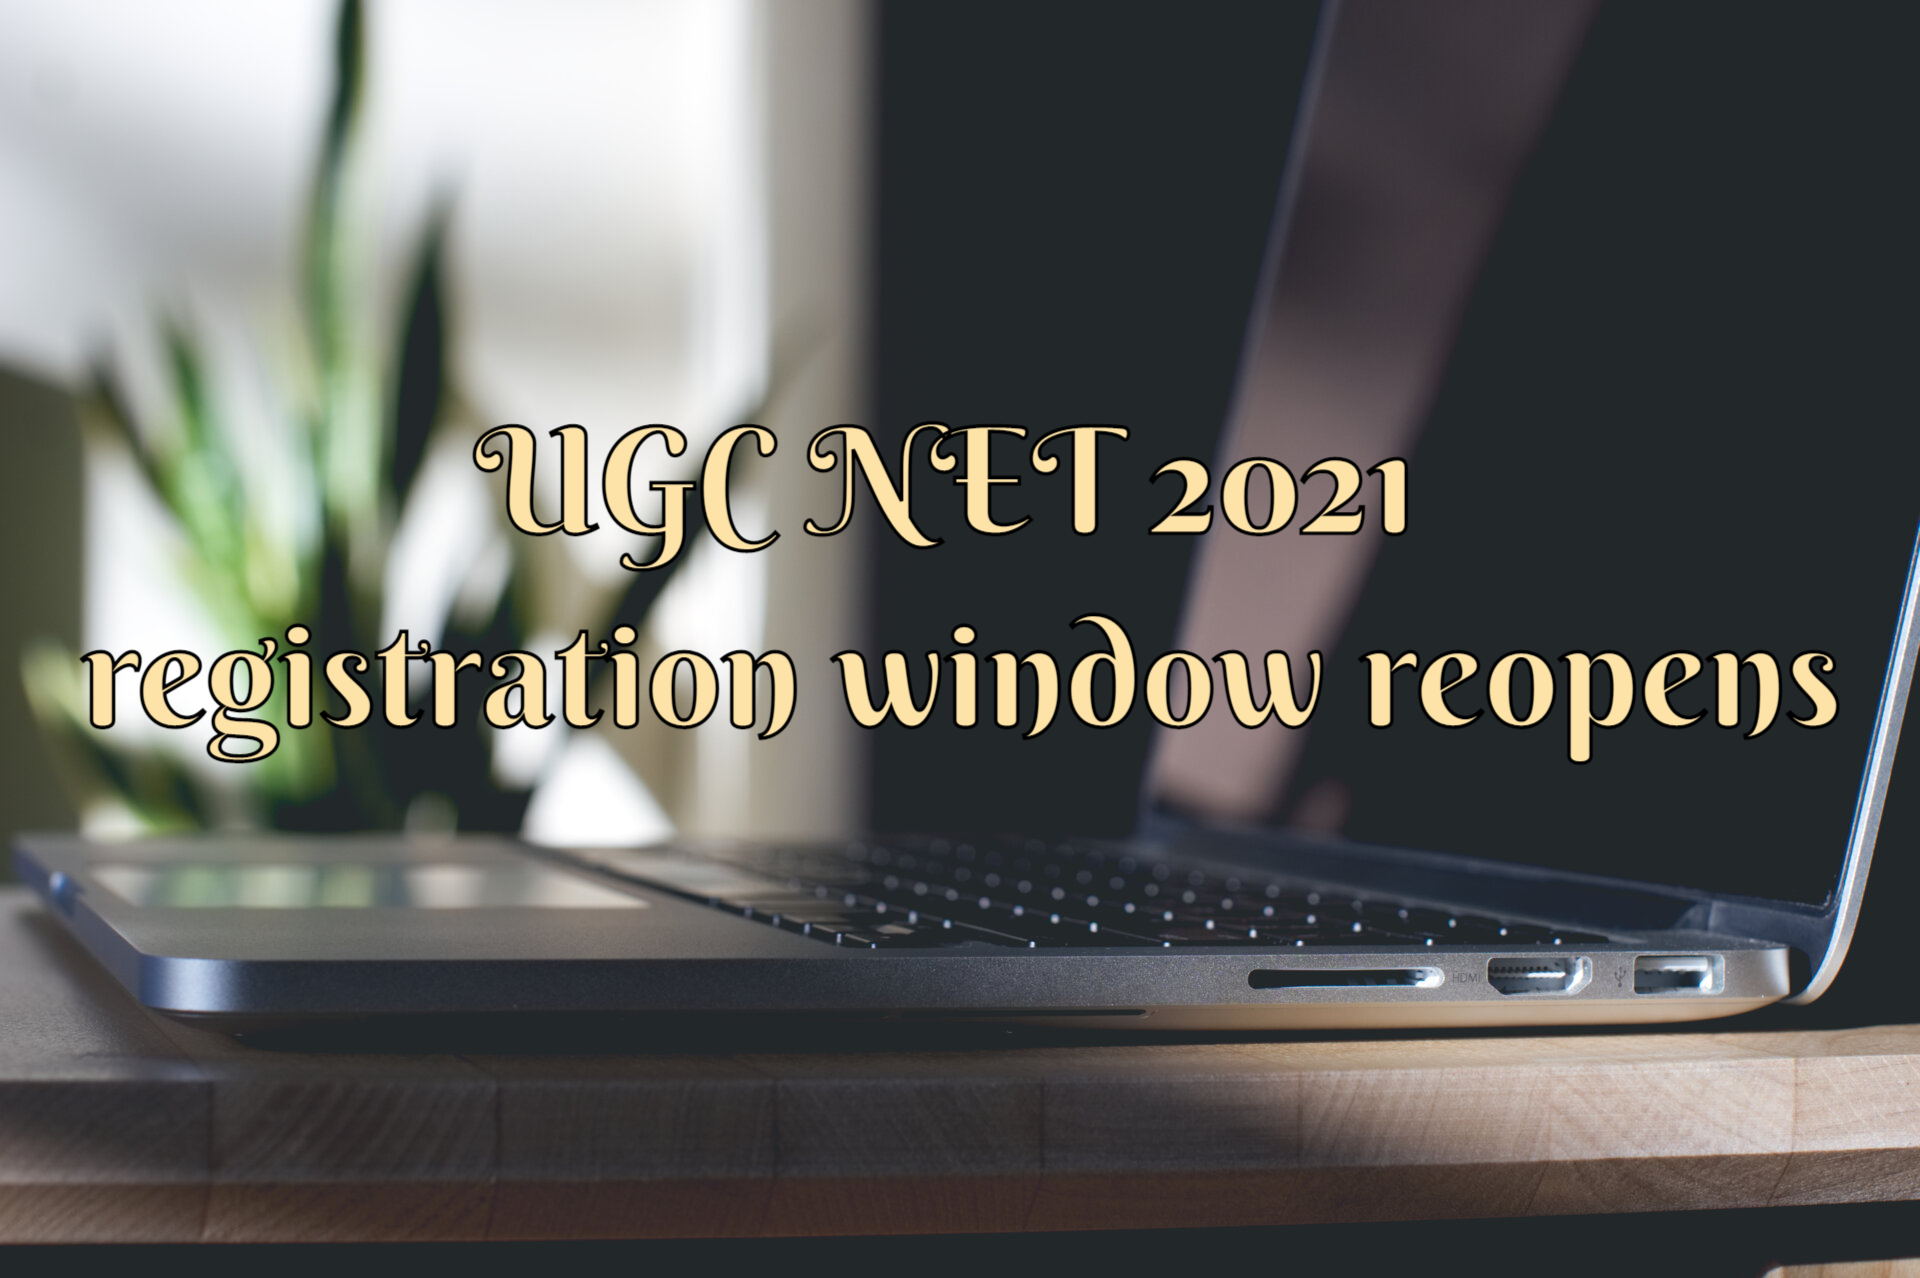 The correction window for the UGC NET Exam cycle for December and June is open. Find out how to correct your exam